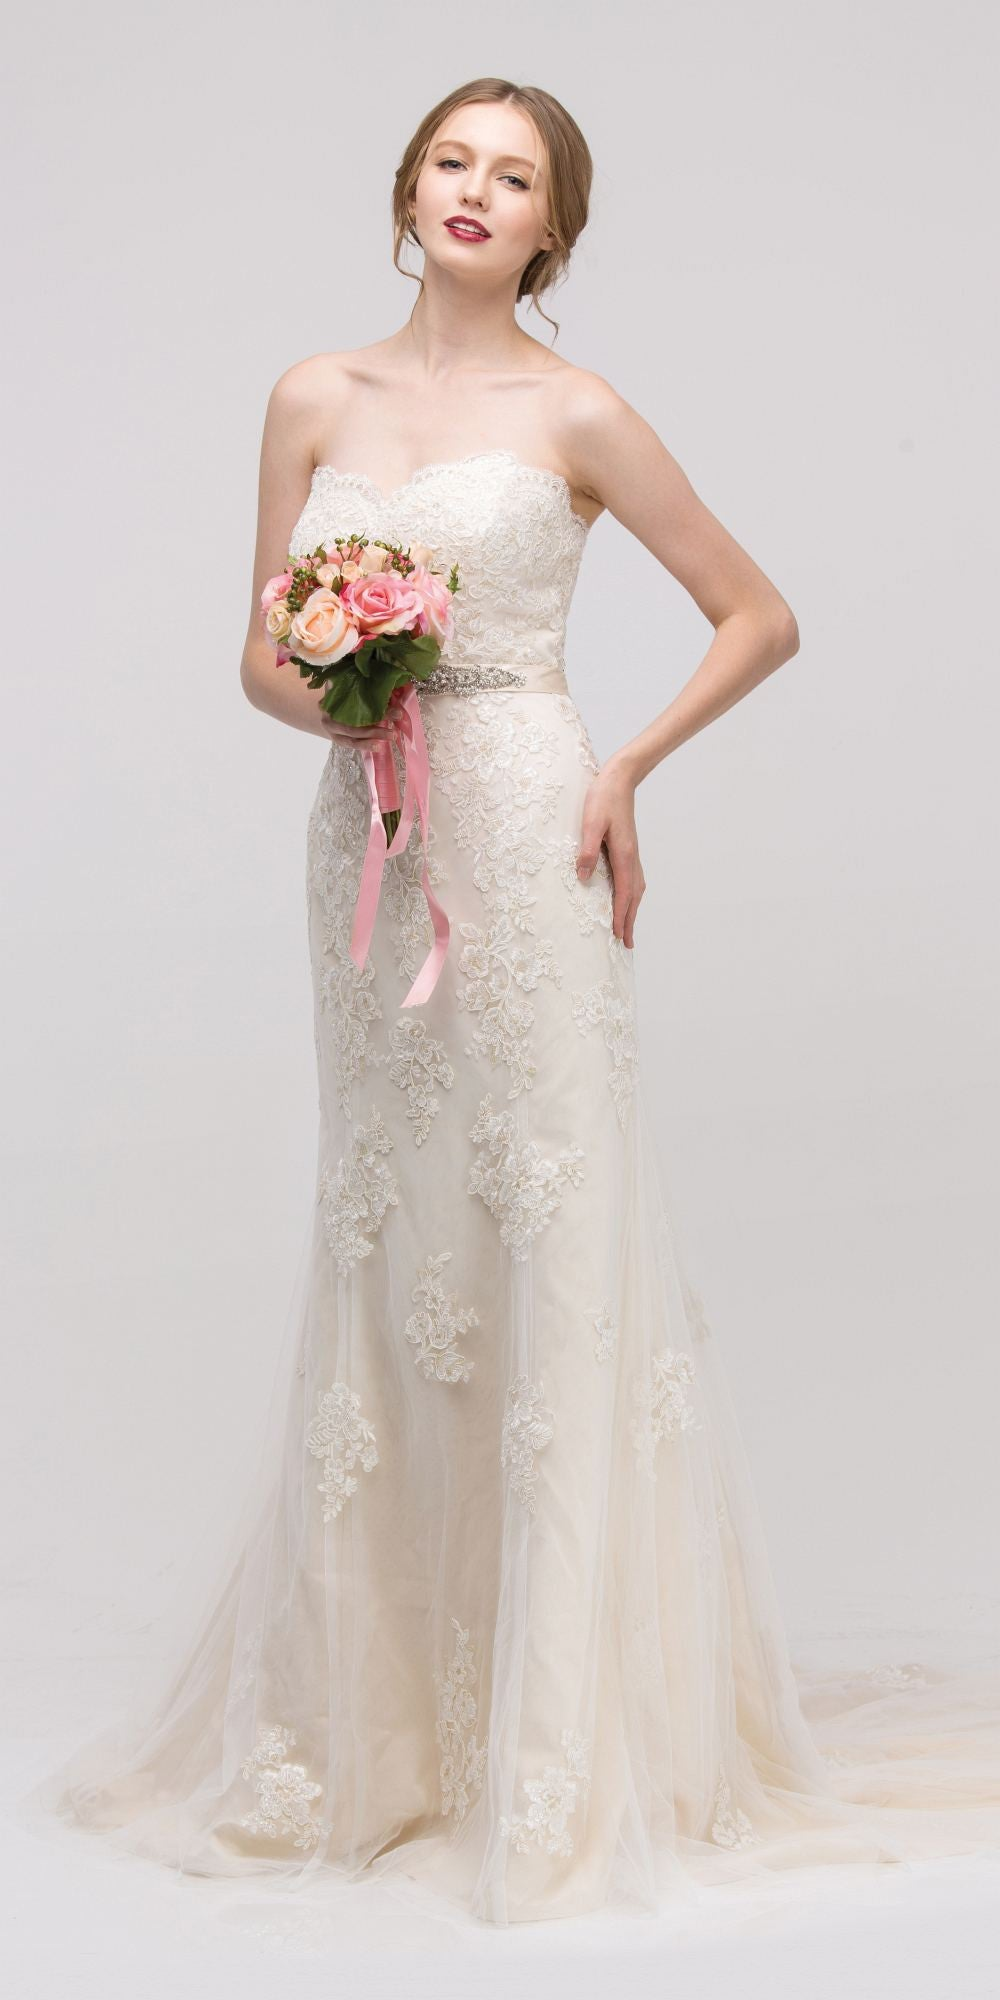 Sweetheart Neckline Fit and Flare Bridal Gown Embellished Waist ...